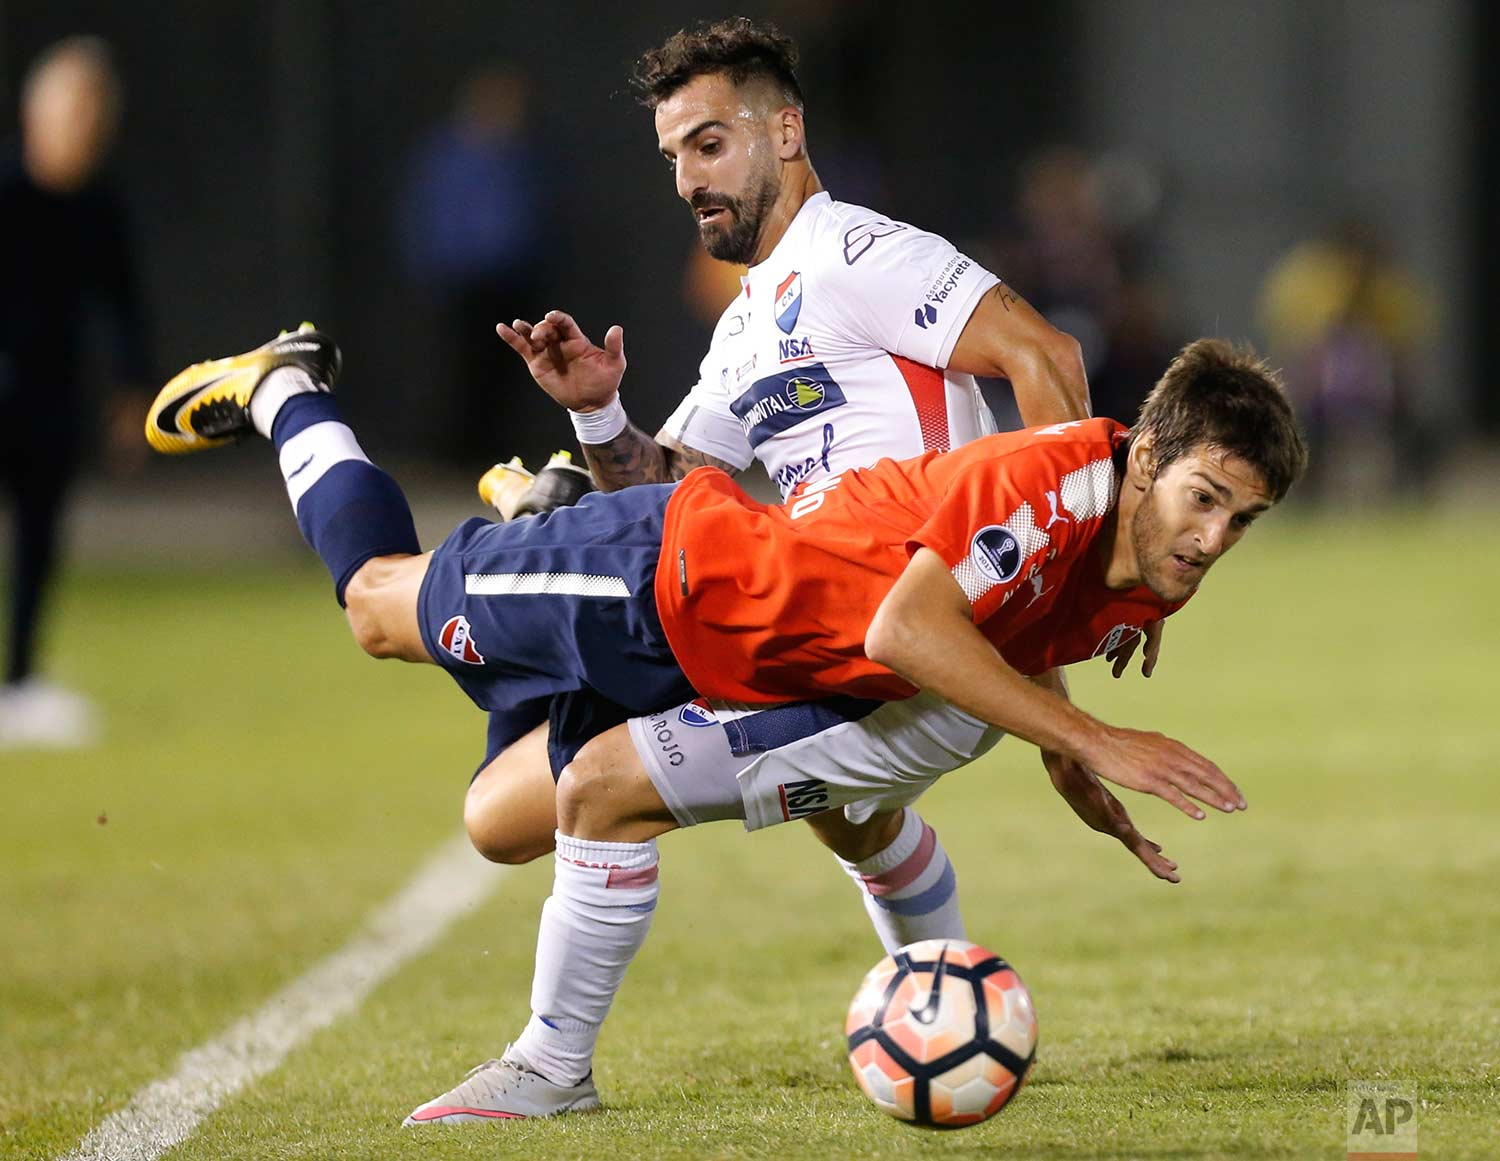 Lucas Albertengo, front, of Argentina's Independiente, fights for the ball with Rodrigo Rojo of Paraguay's Nacional during a Copa Sudamericana quarter final soccer game in Asuncion, Paraguay, Wednesday, Oct. 25, 2017. (AP Photo/Jorge Saenz)